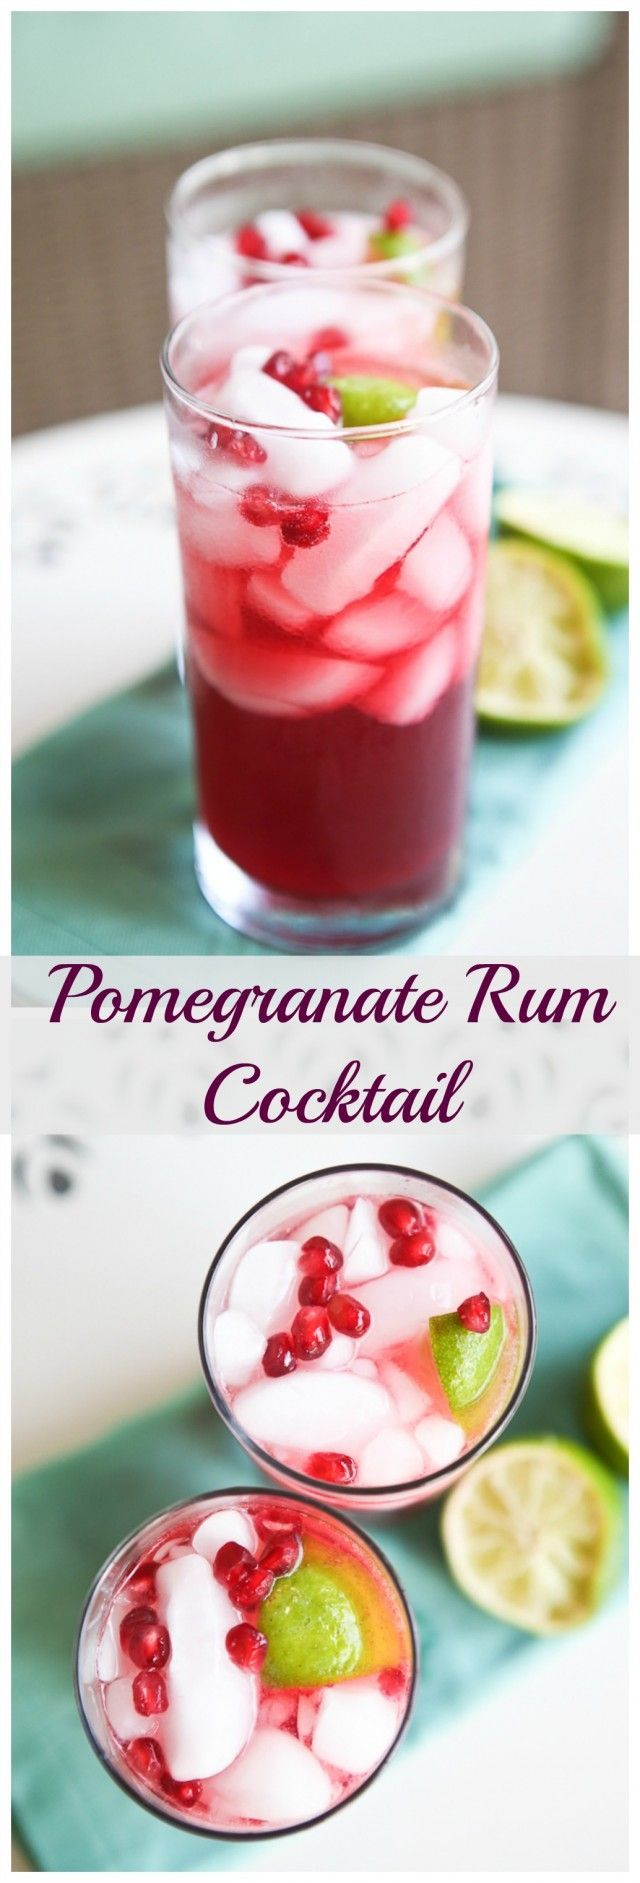 Pomegranate Rum Cocktail | Recipe | Christmas drinks, Drinks alcohol recipes, Holiday drinks